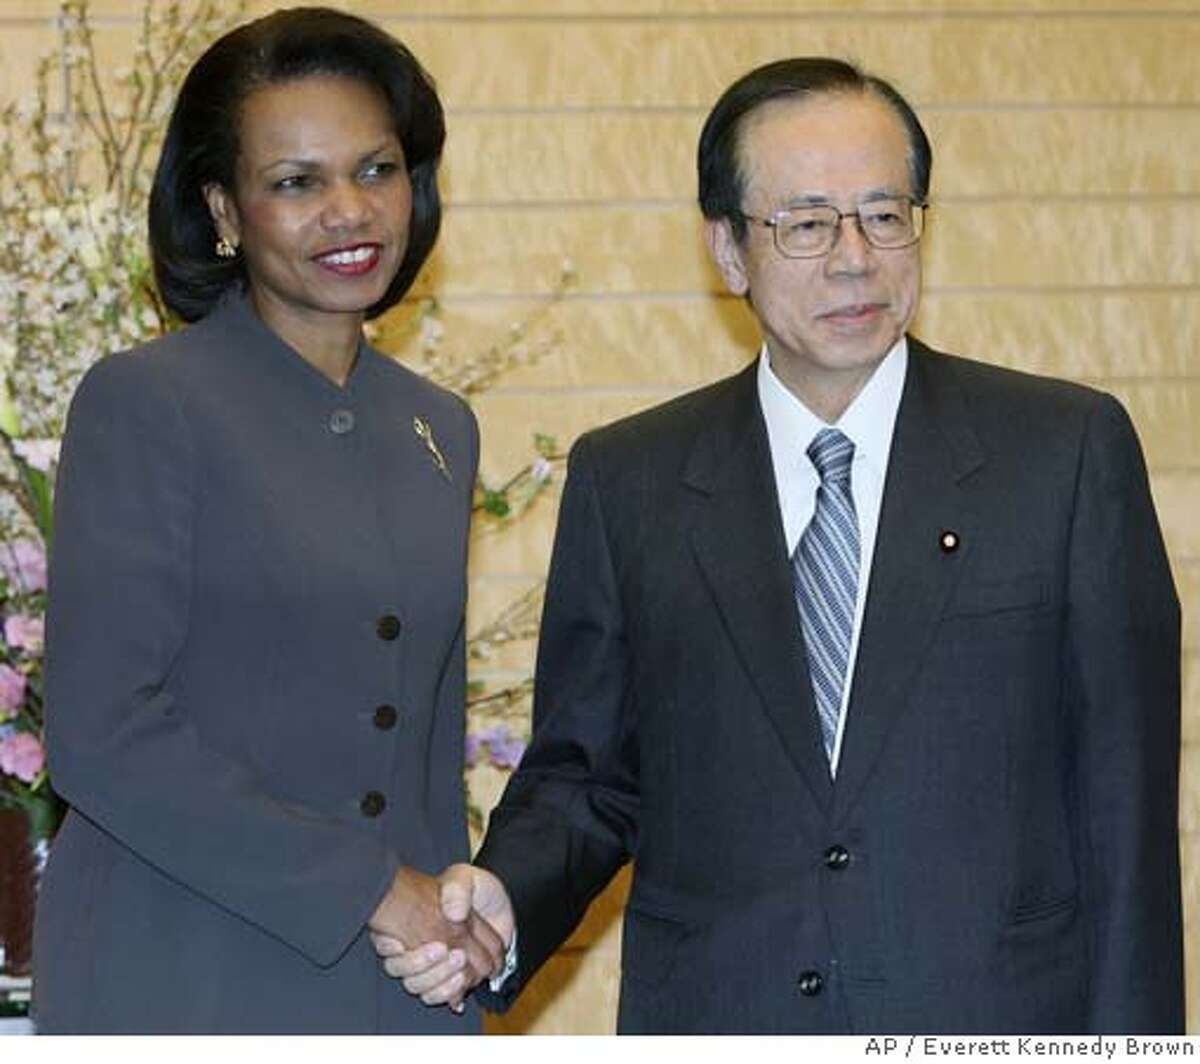 U.S. Secretary of State Condoleezza Rice, left, shakes hands with Japanese Prime Minister Yasuo Fukuda at the latter's official residence in Tokyo, Wednesday, Feb. 27, 2008. Rice ordered a top Asia diplomat to stay in China on Wednesday to look at fresh ways of unblocking the stalled effort to get North Korea to abandon nuclear weapons. (AP Photo/Everett Kennedy Brown, Pool) POOL PHOTO